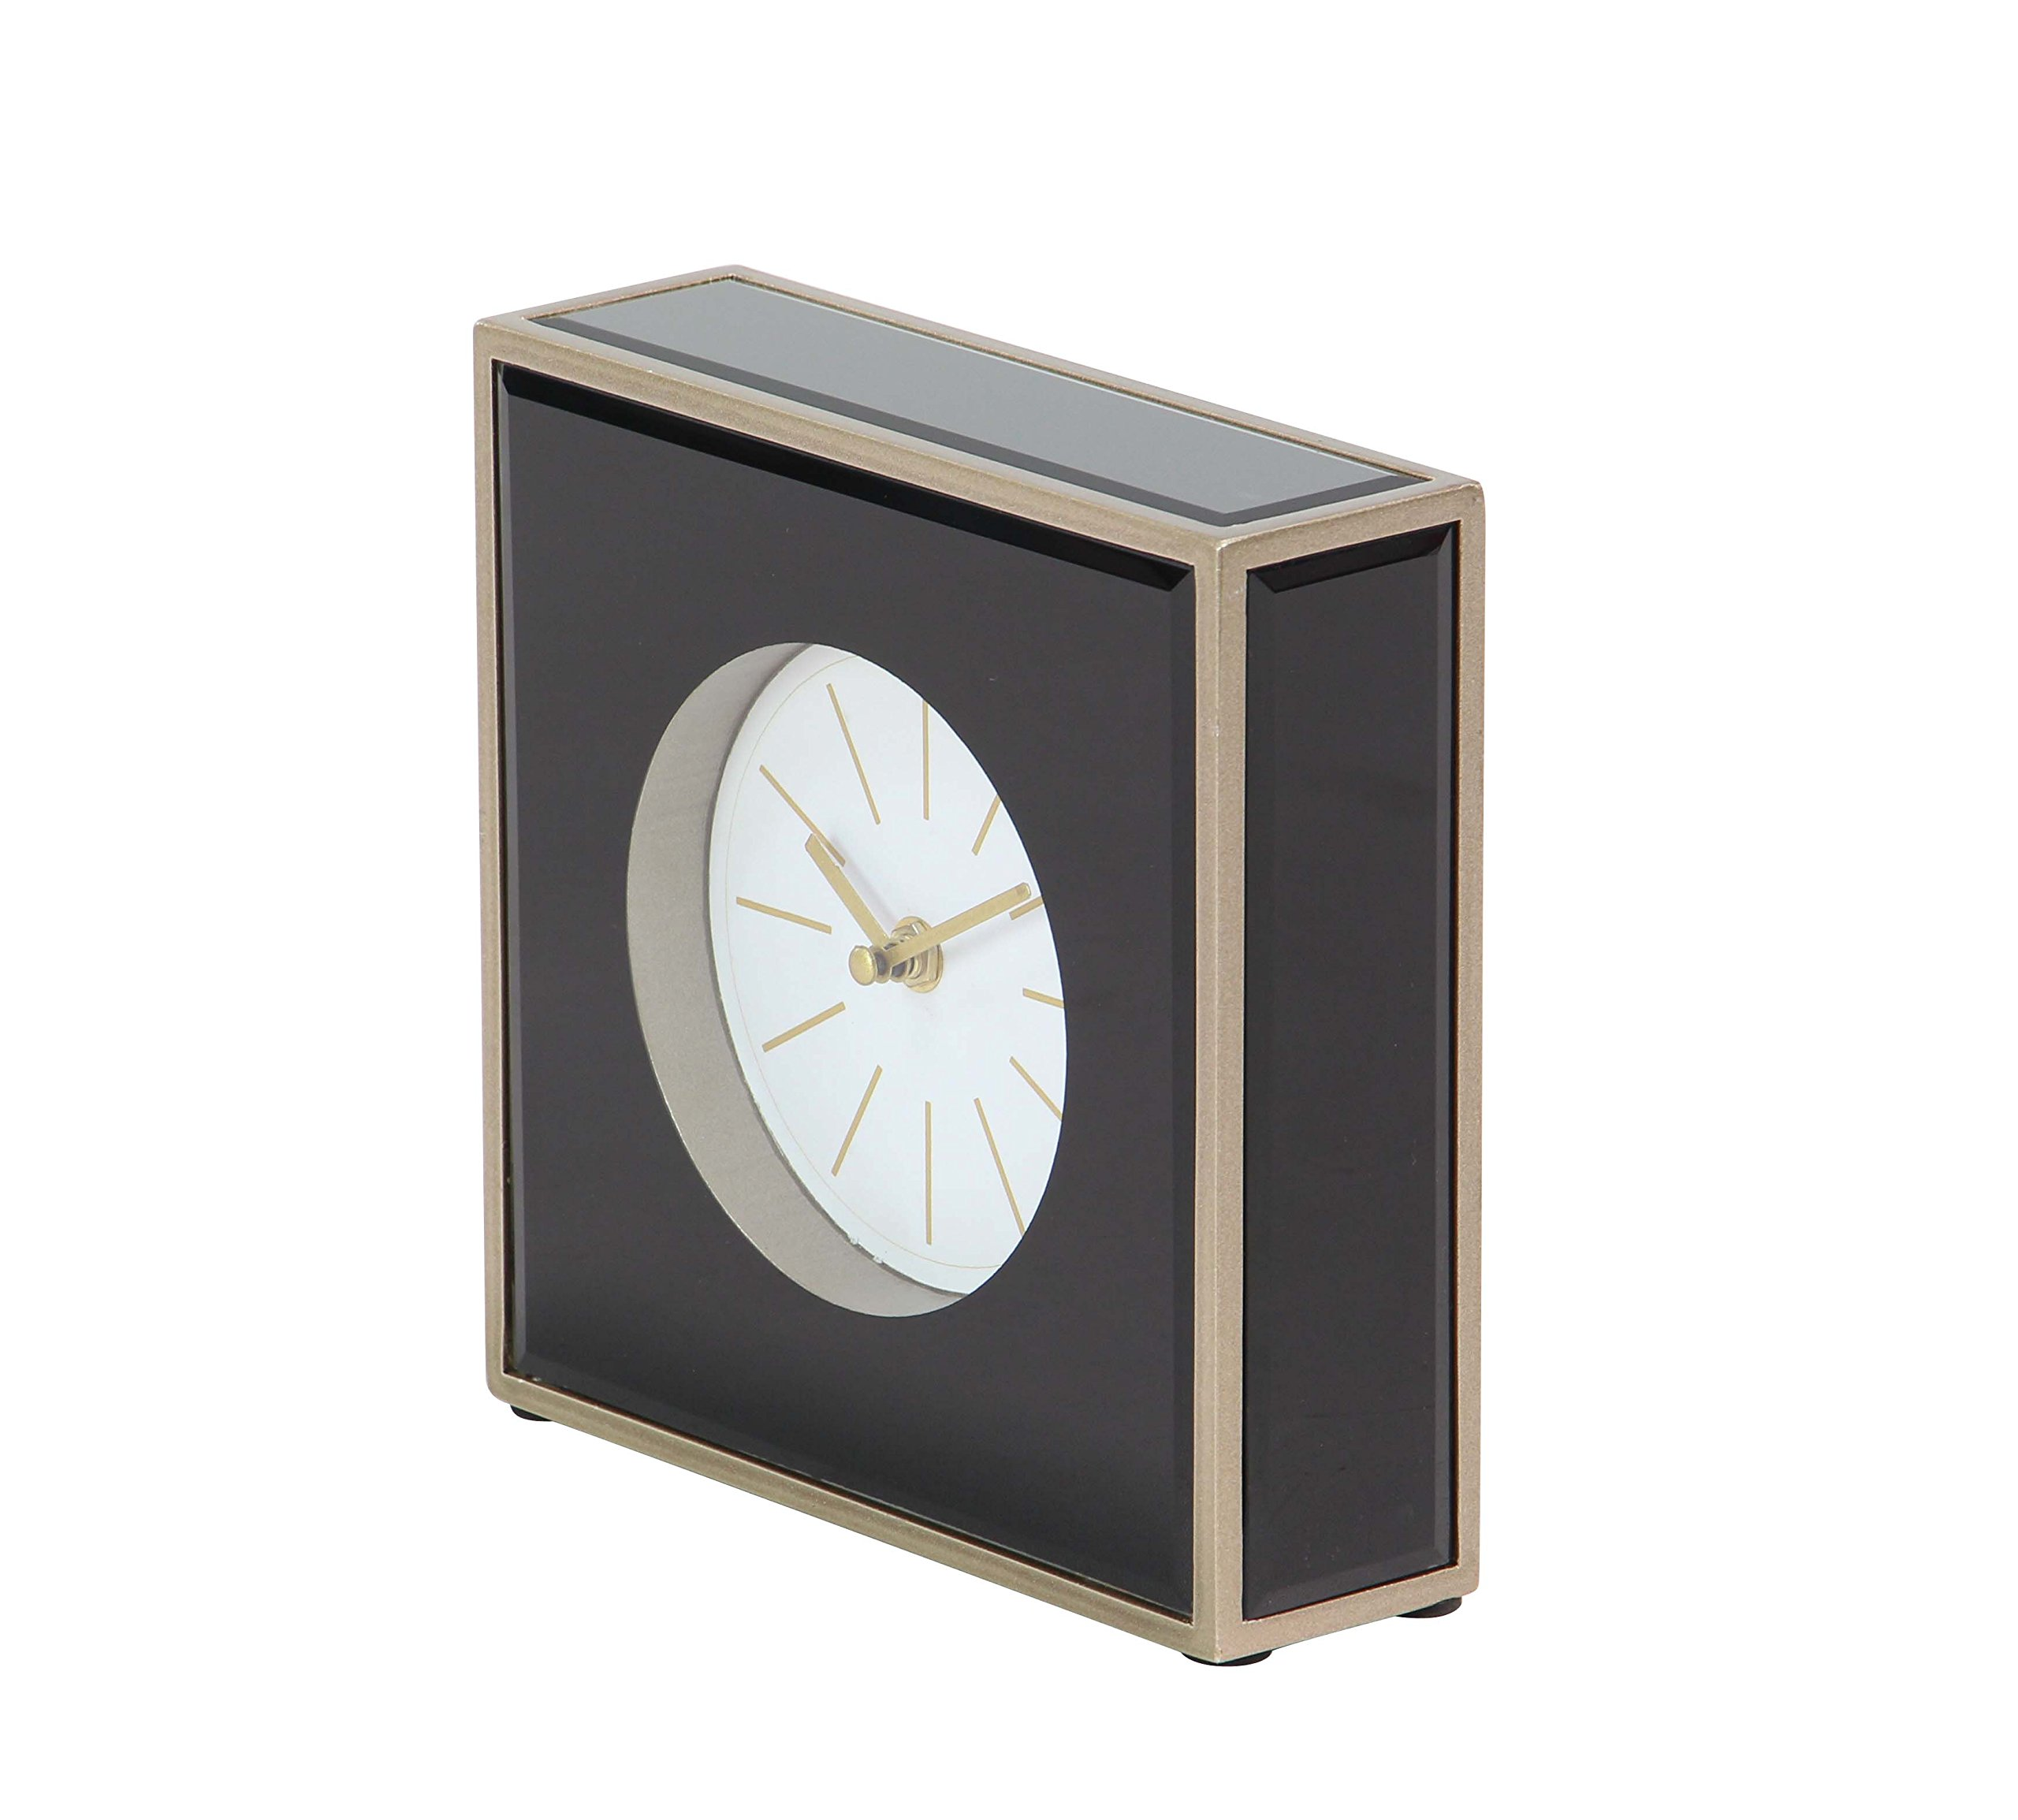 Deco 79 87388 Table Clock, Black/Brown/Gold/White - Suits perfectly in your room's side table Gold finish adds elegance to your space MDF wood provides durability to the frame - clocks, bedroom-decor, bedroom - 815BQO0ytaL -